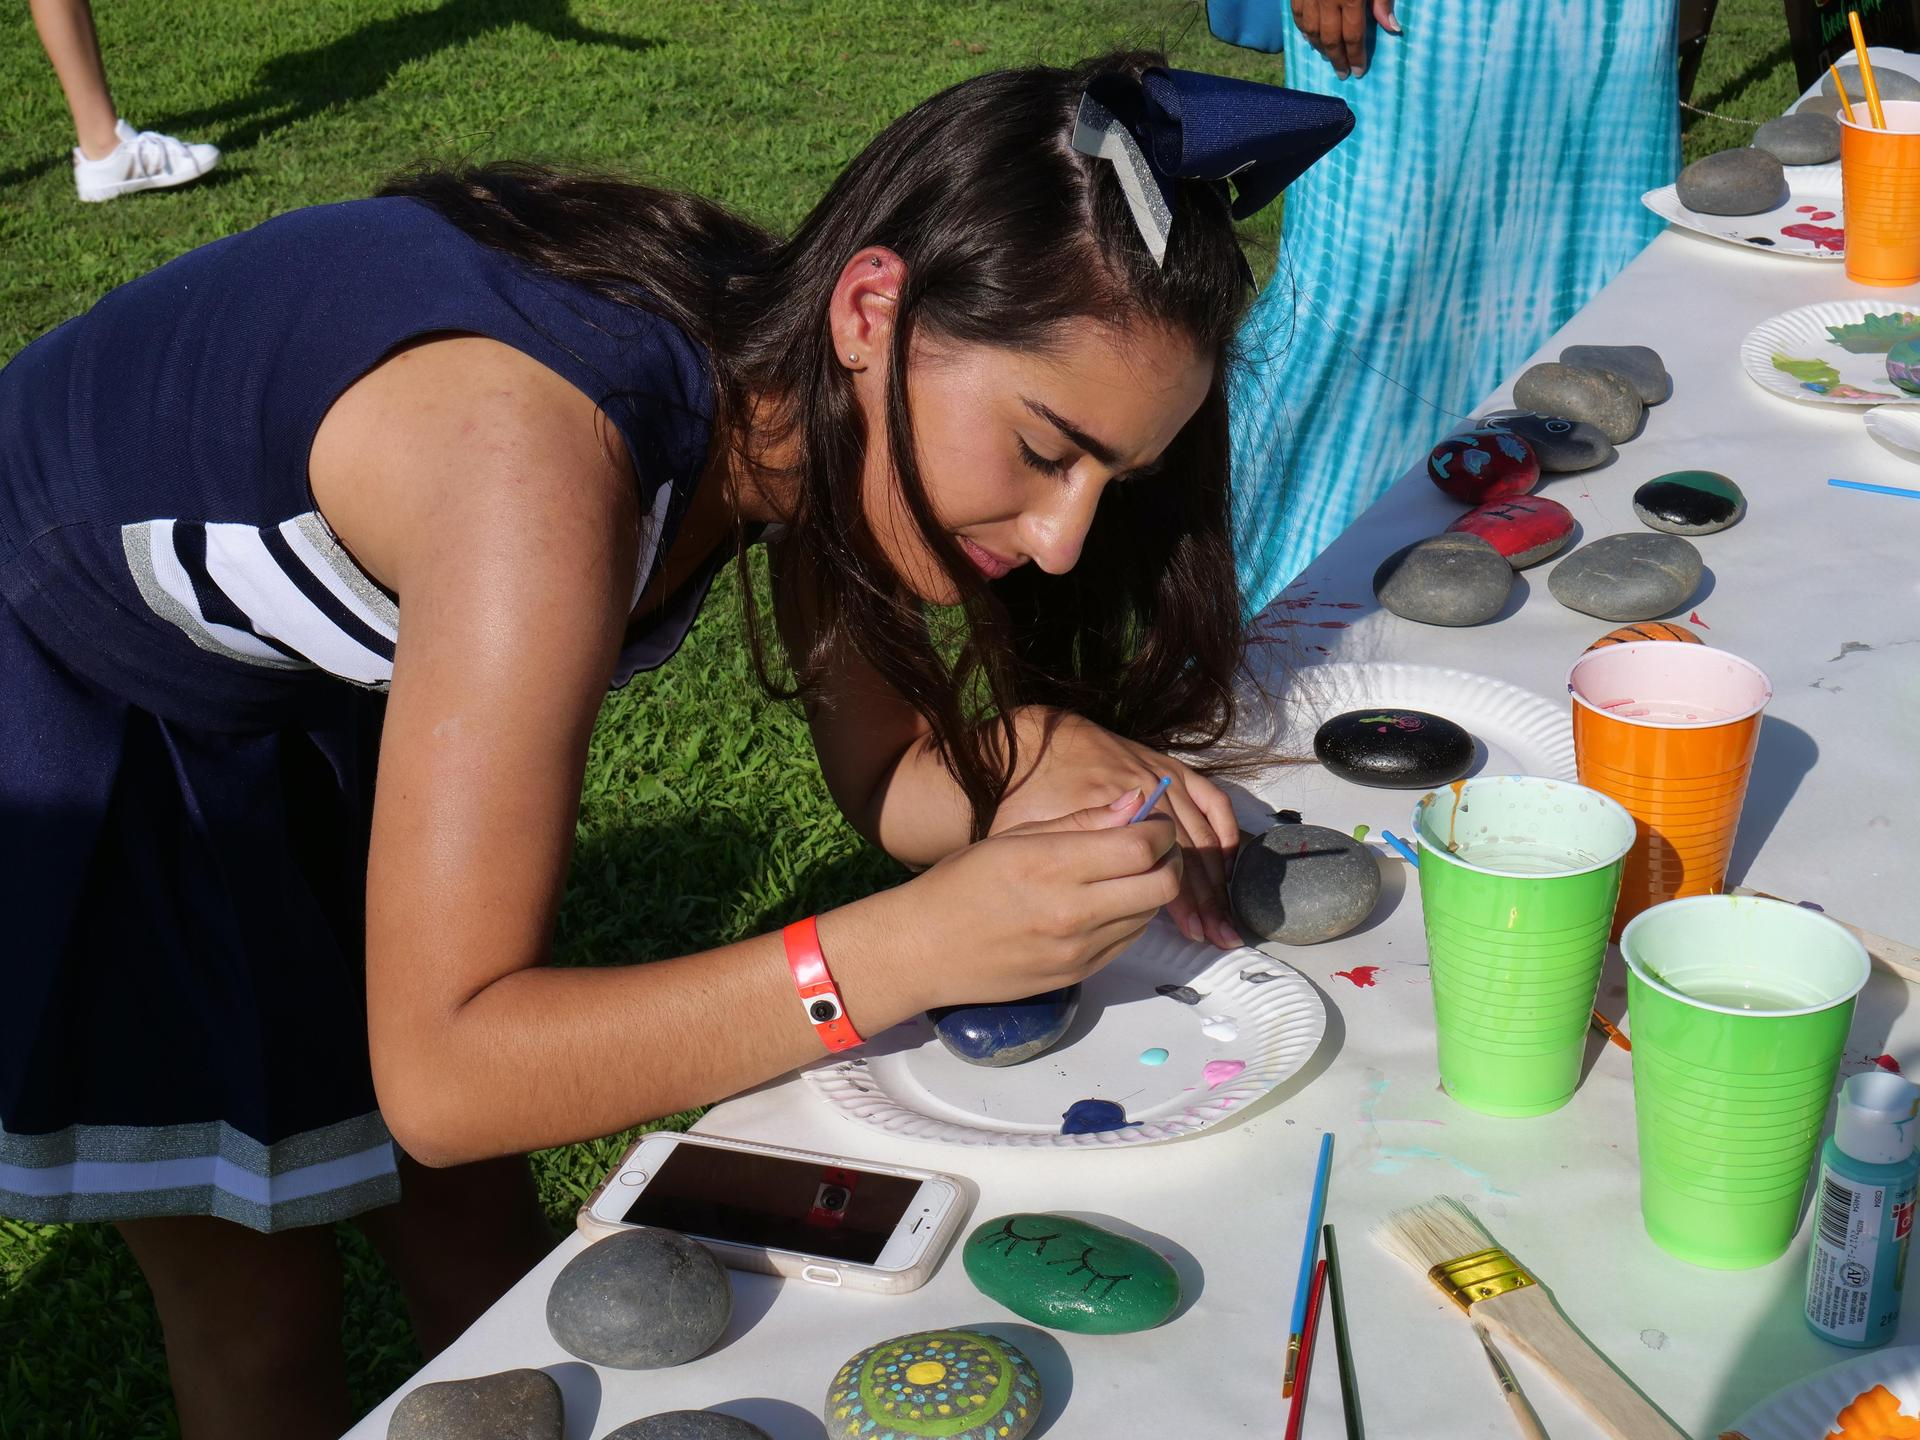 Senior cheerleader painting at the Husky Pride Picnic